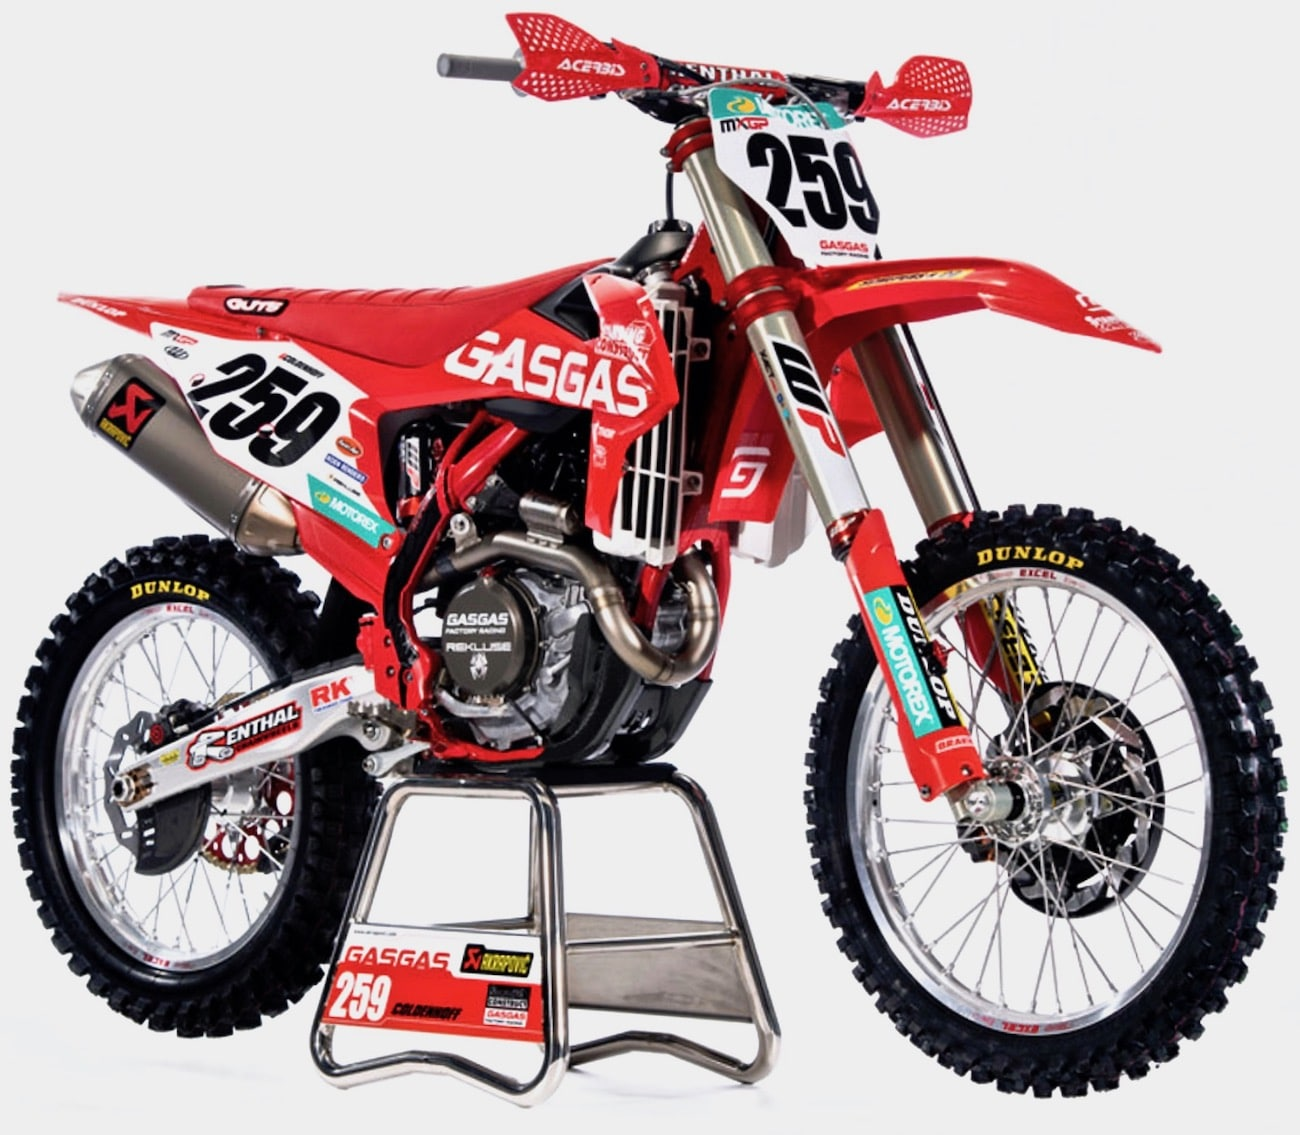 First Look At The 2021 Gasgas Motocross Bikes Motocross Action Magazine